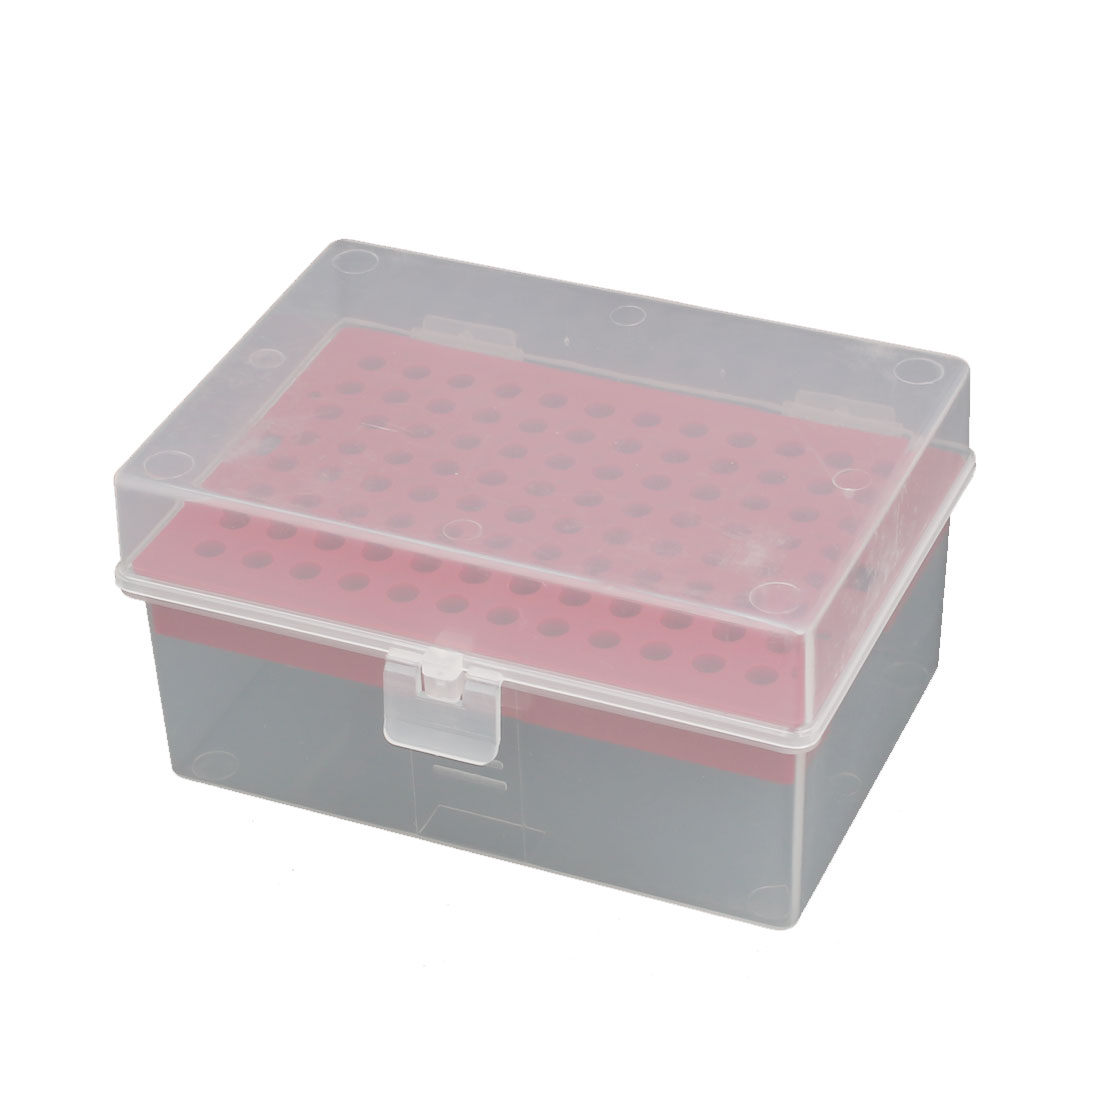 200UL 96 Positions Centrifuge Tube Holder Rack Storage Box Case Red Clear